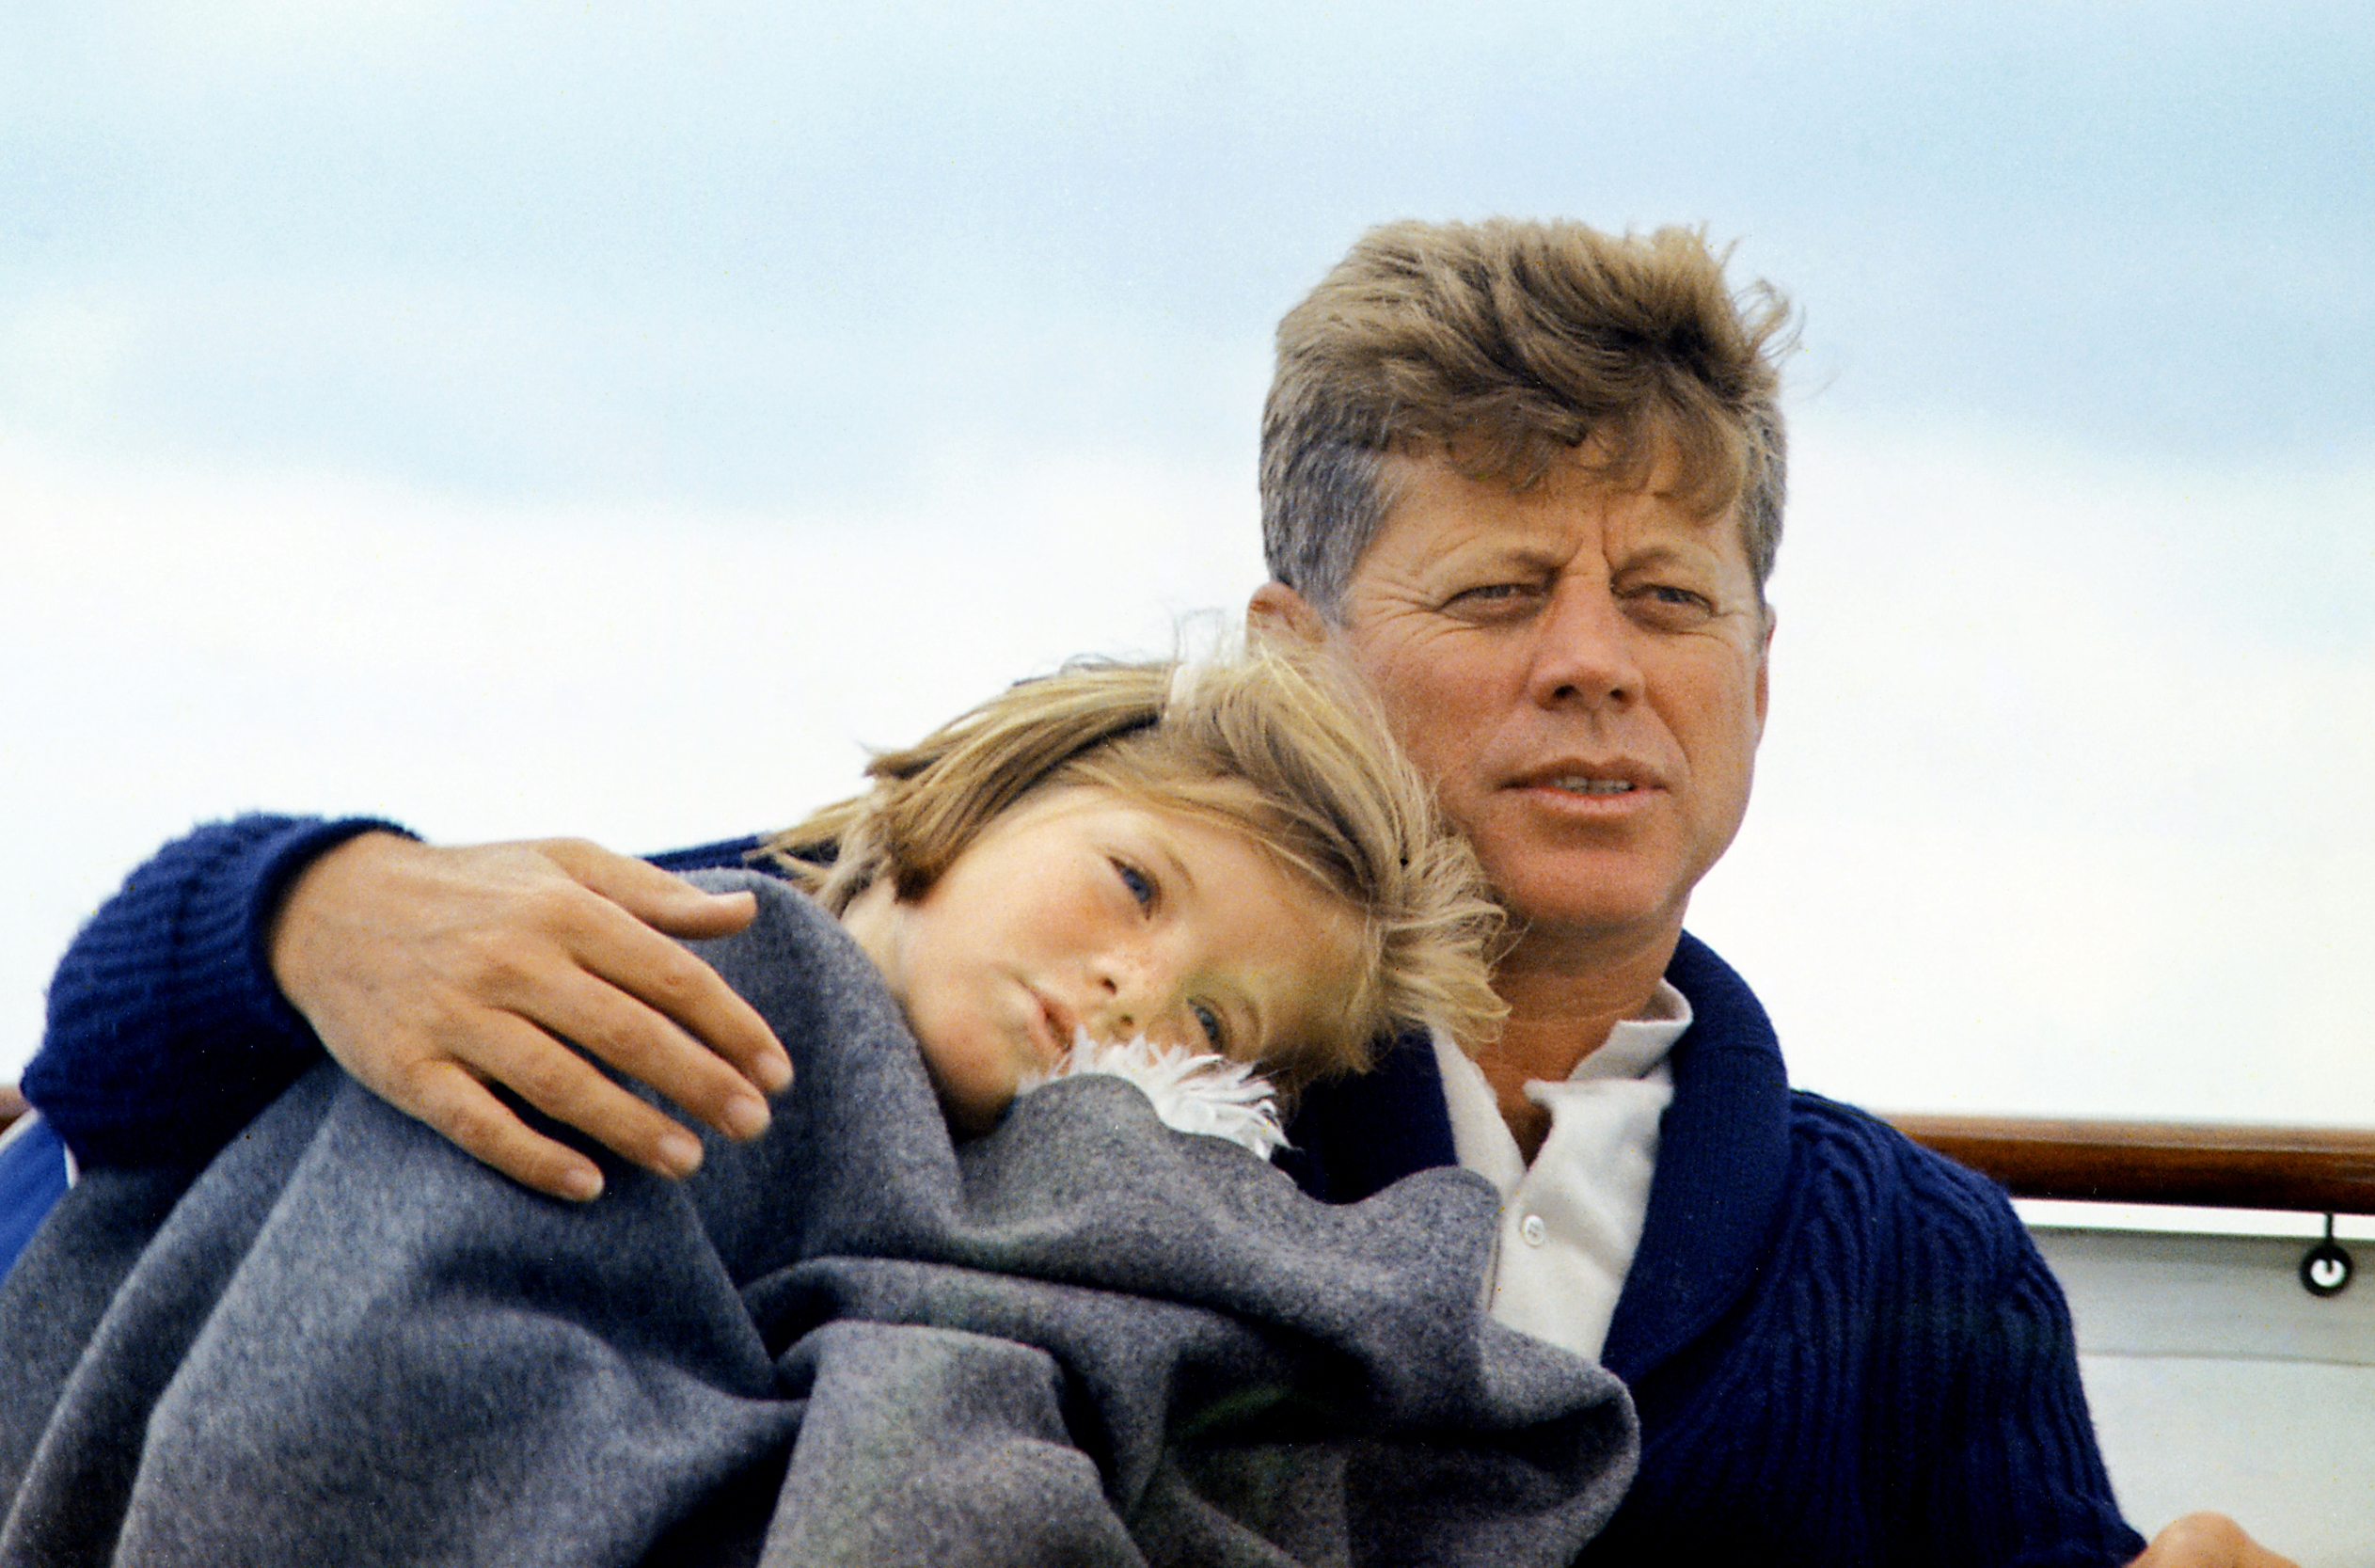 president john f kennedy image and reality Its narrations of the major crises of the kennedy presidency: the bay of pigs,   president john f kennedy inherited a nation in transition  image and reality.